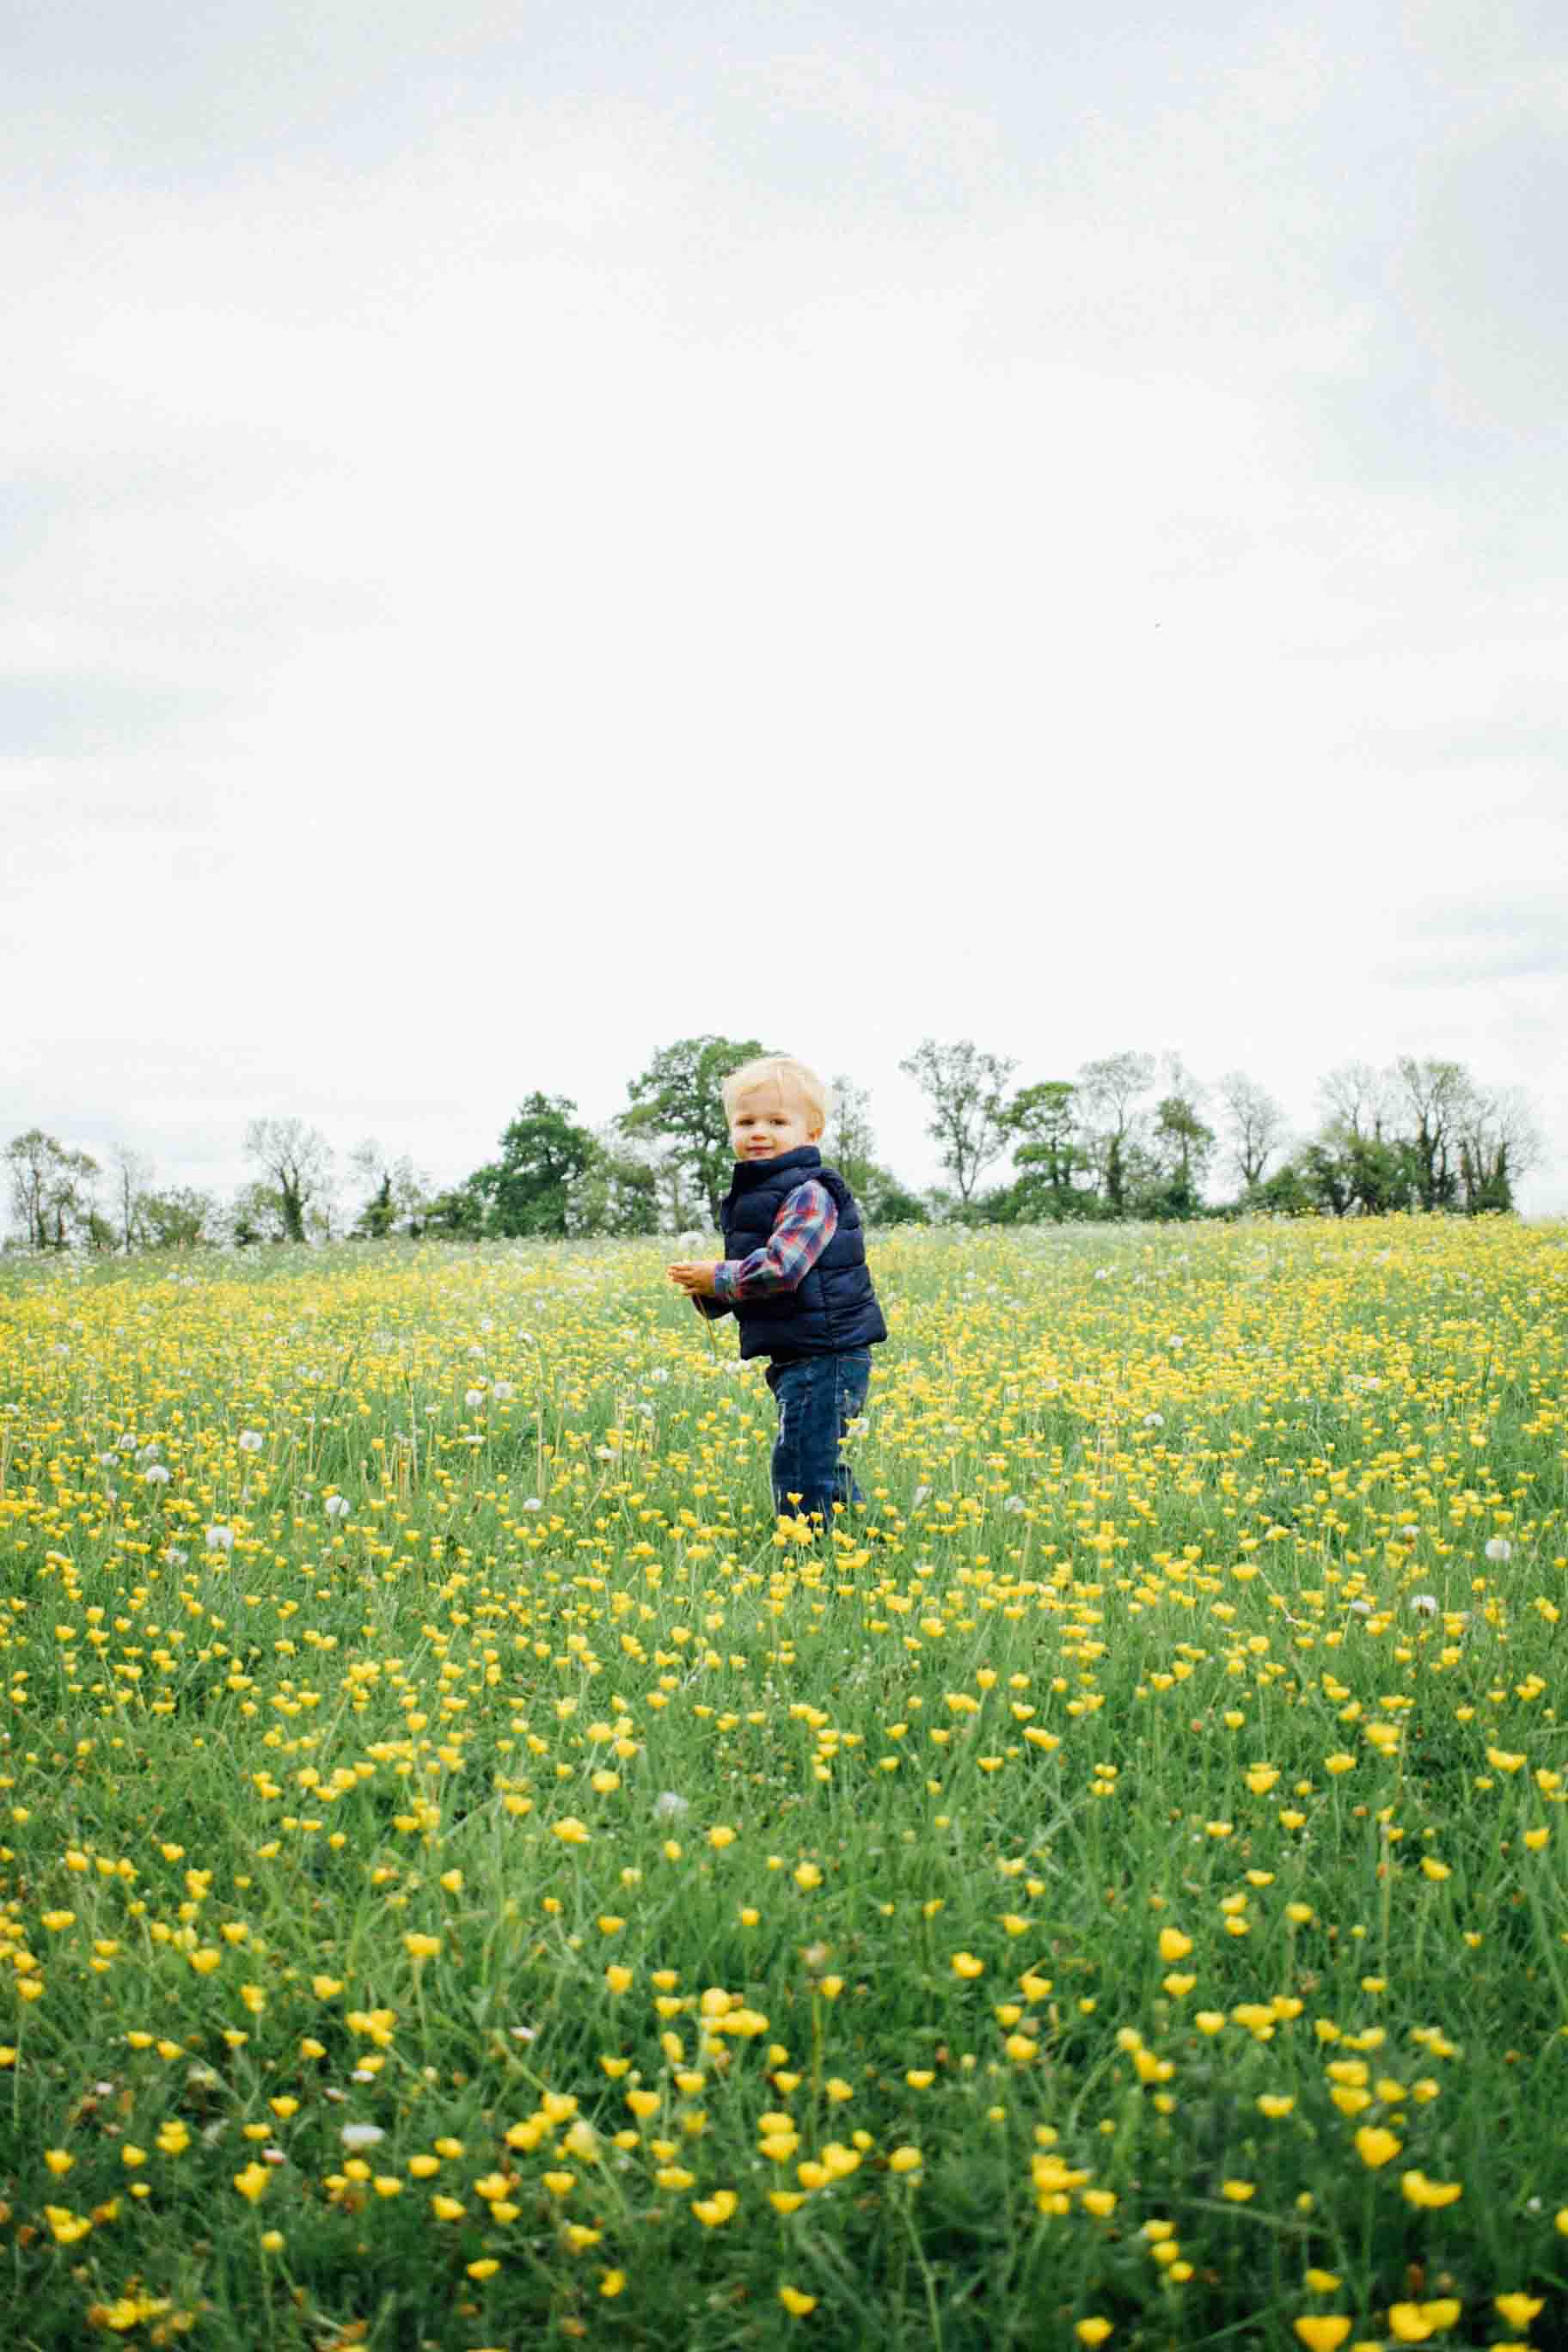 The green fields and yellow flowers... absolutely beautiful and they just went on for miles.